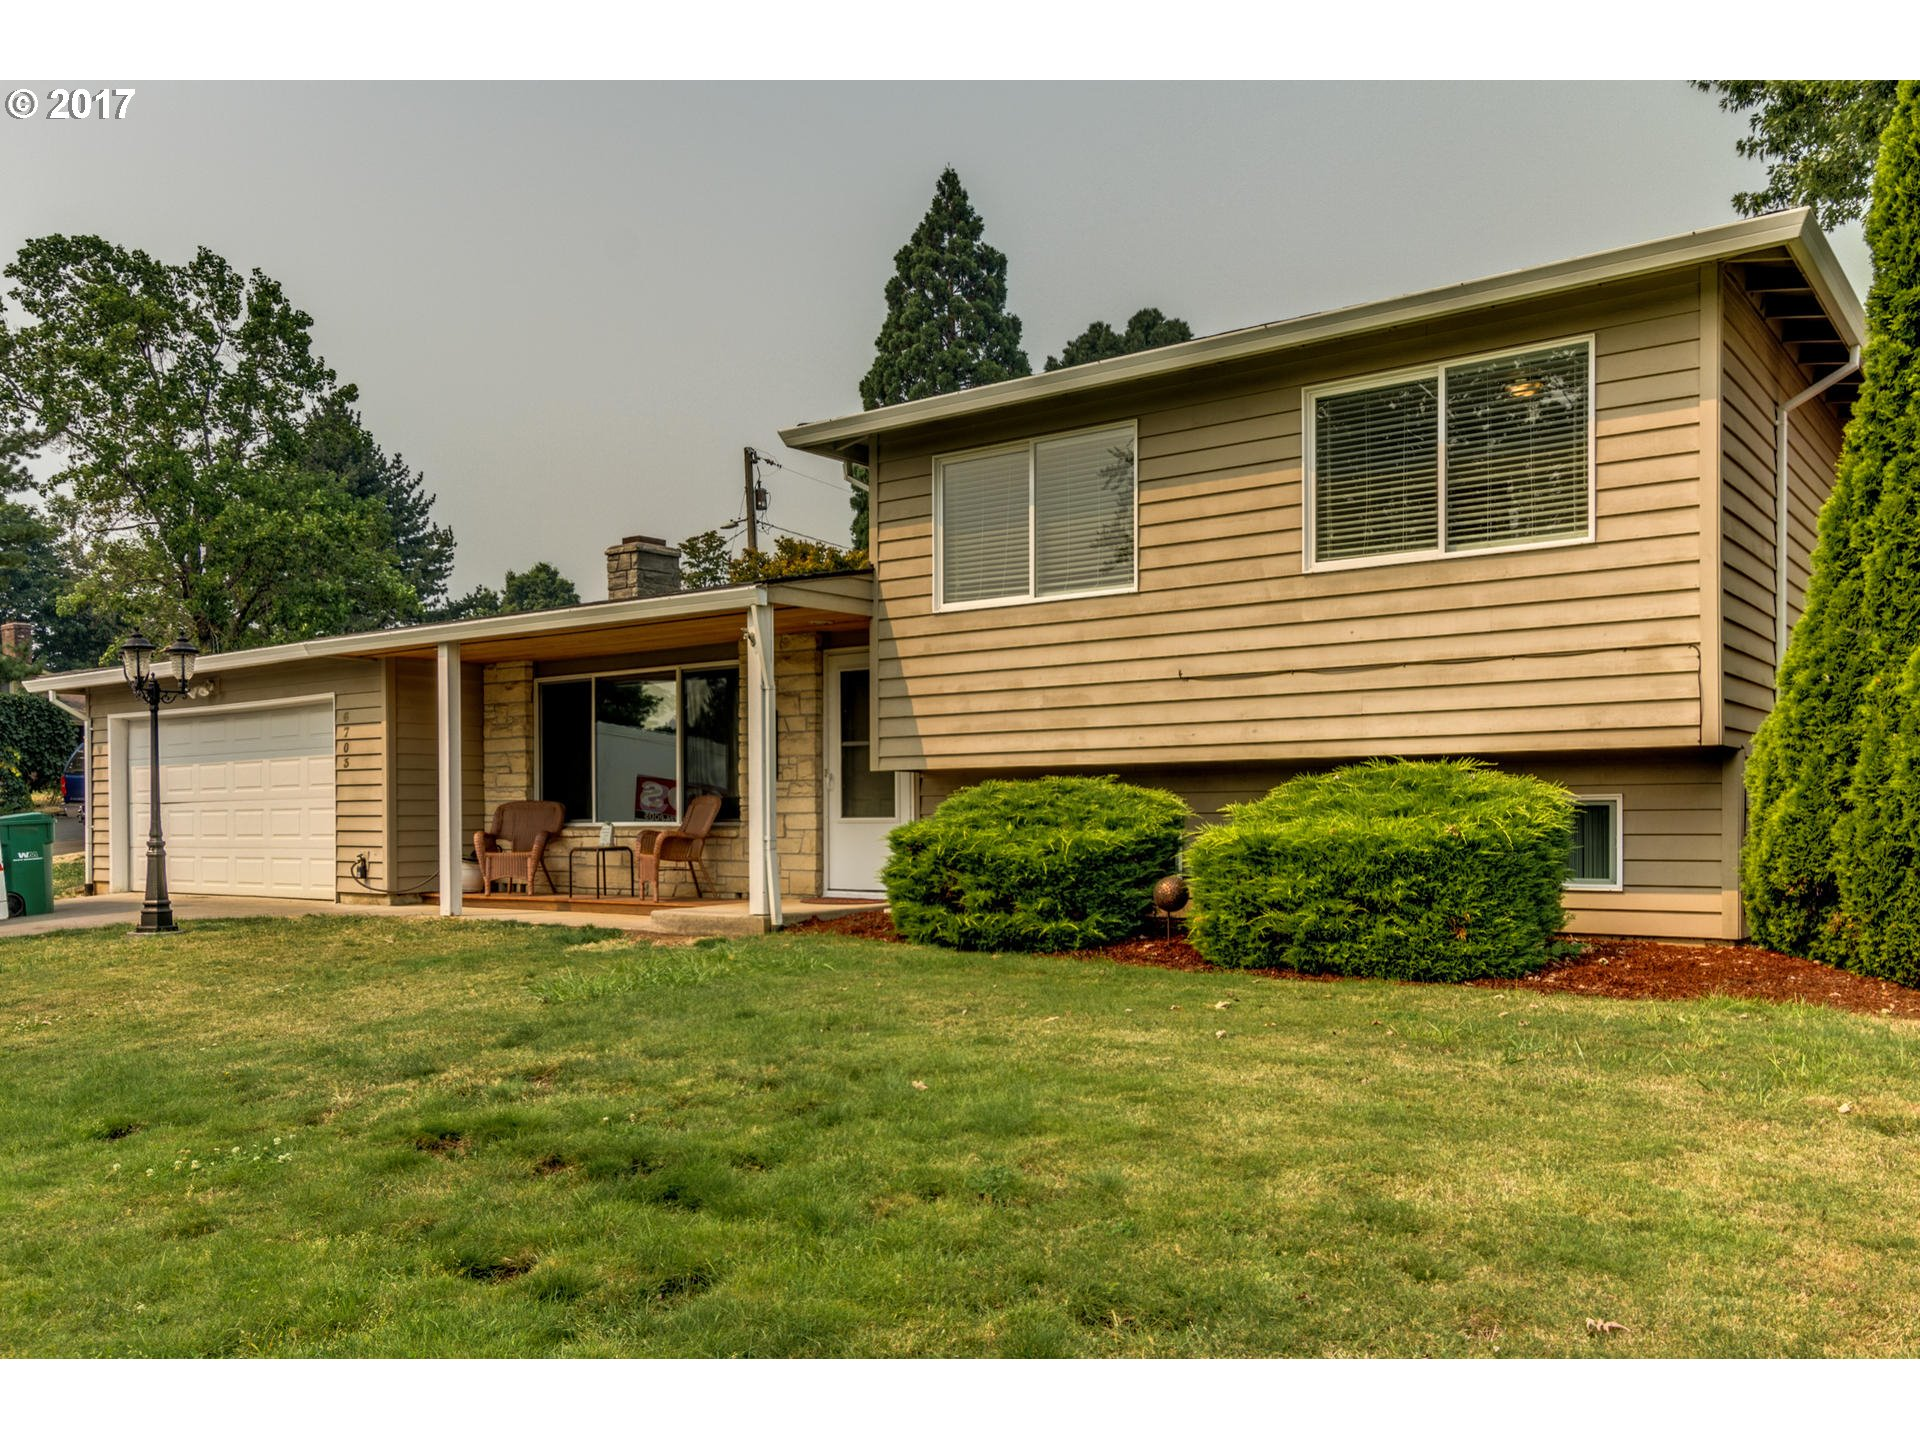 6703 SE PLUM DR Milwaukie, OR 97222 - MLS #: 17554713